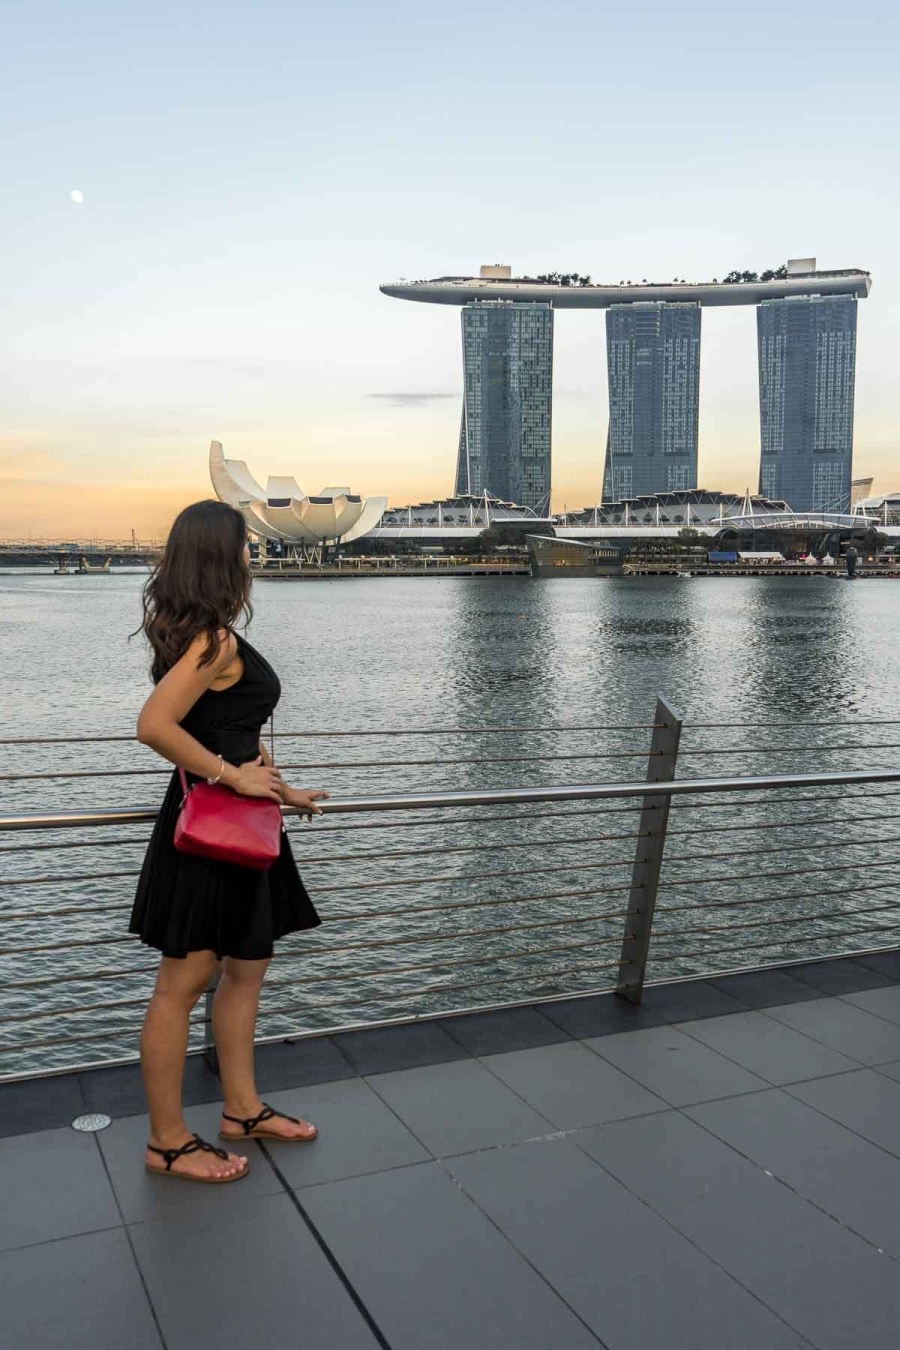 Girl in a black dress watching the sunset over Marina Bay Sands in Singapore